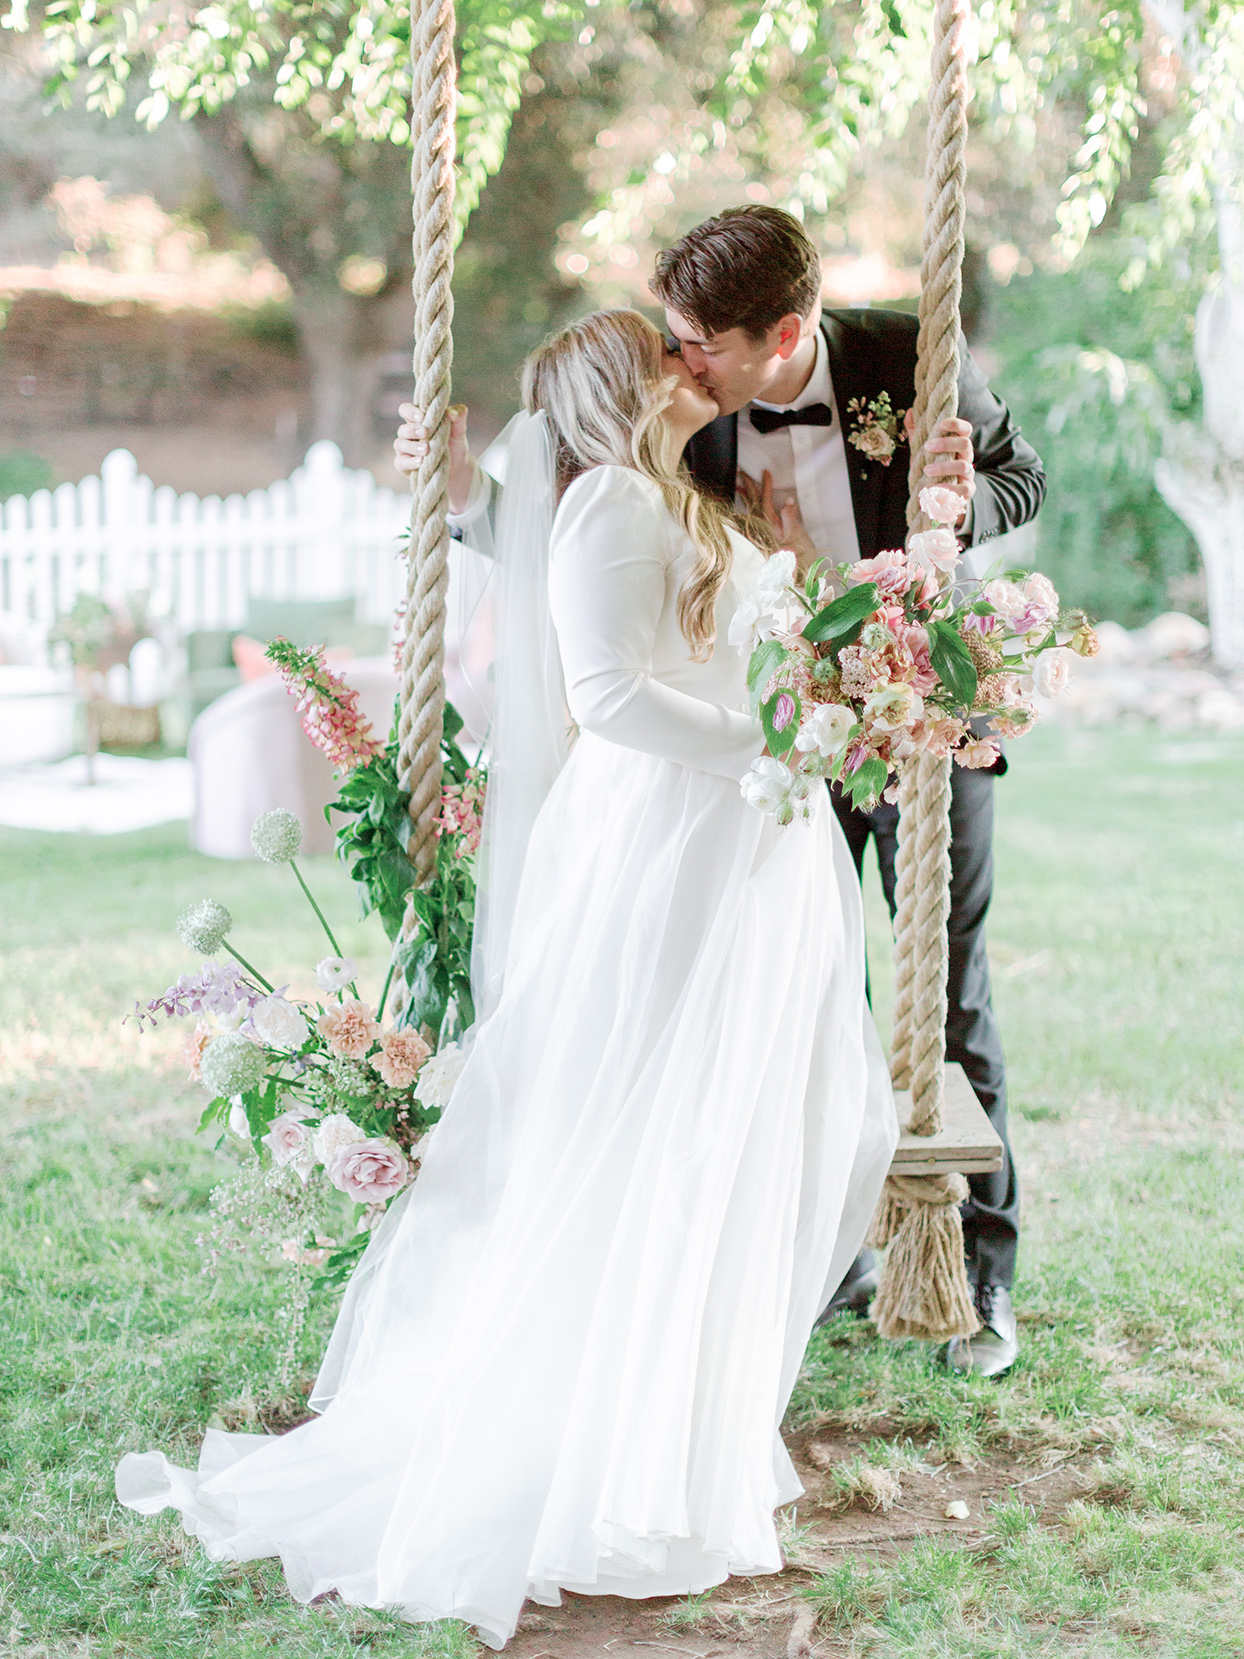 bride on wooden swing held up by ropes and floral accents kissing groom standing behind